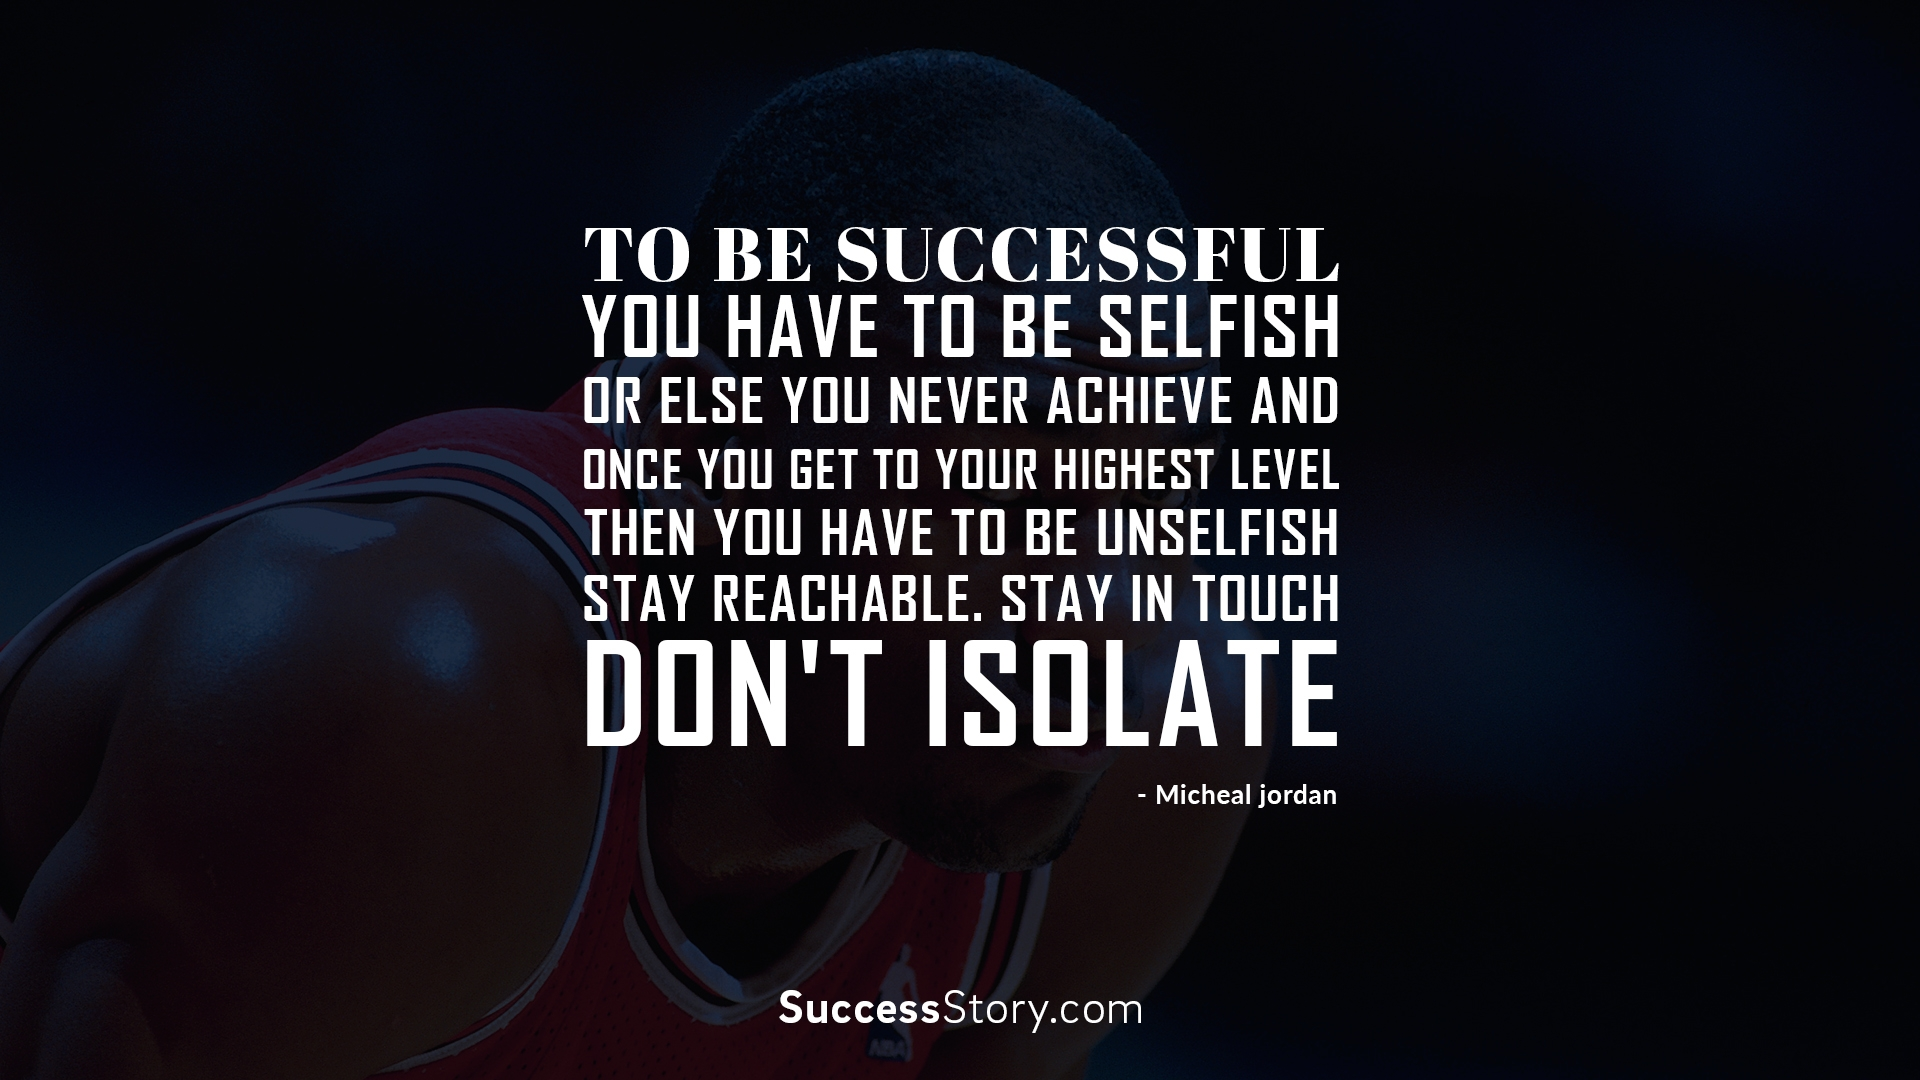 To be successful you